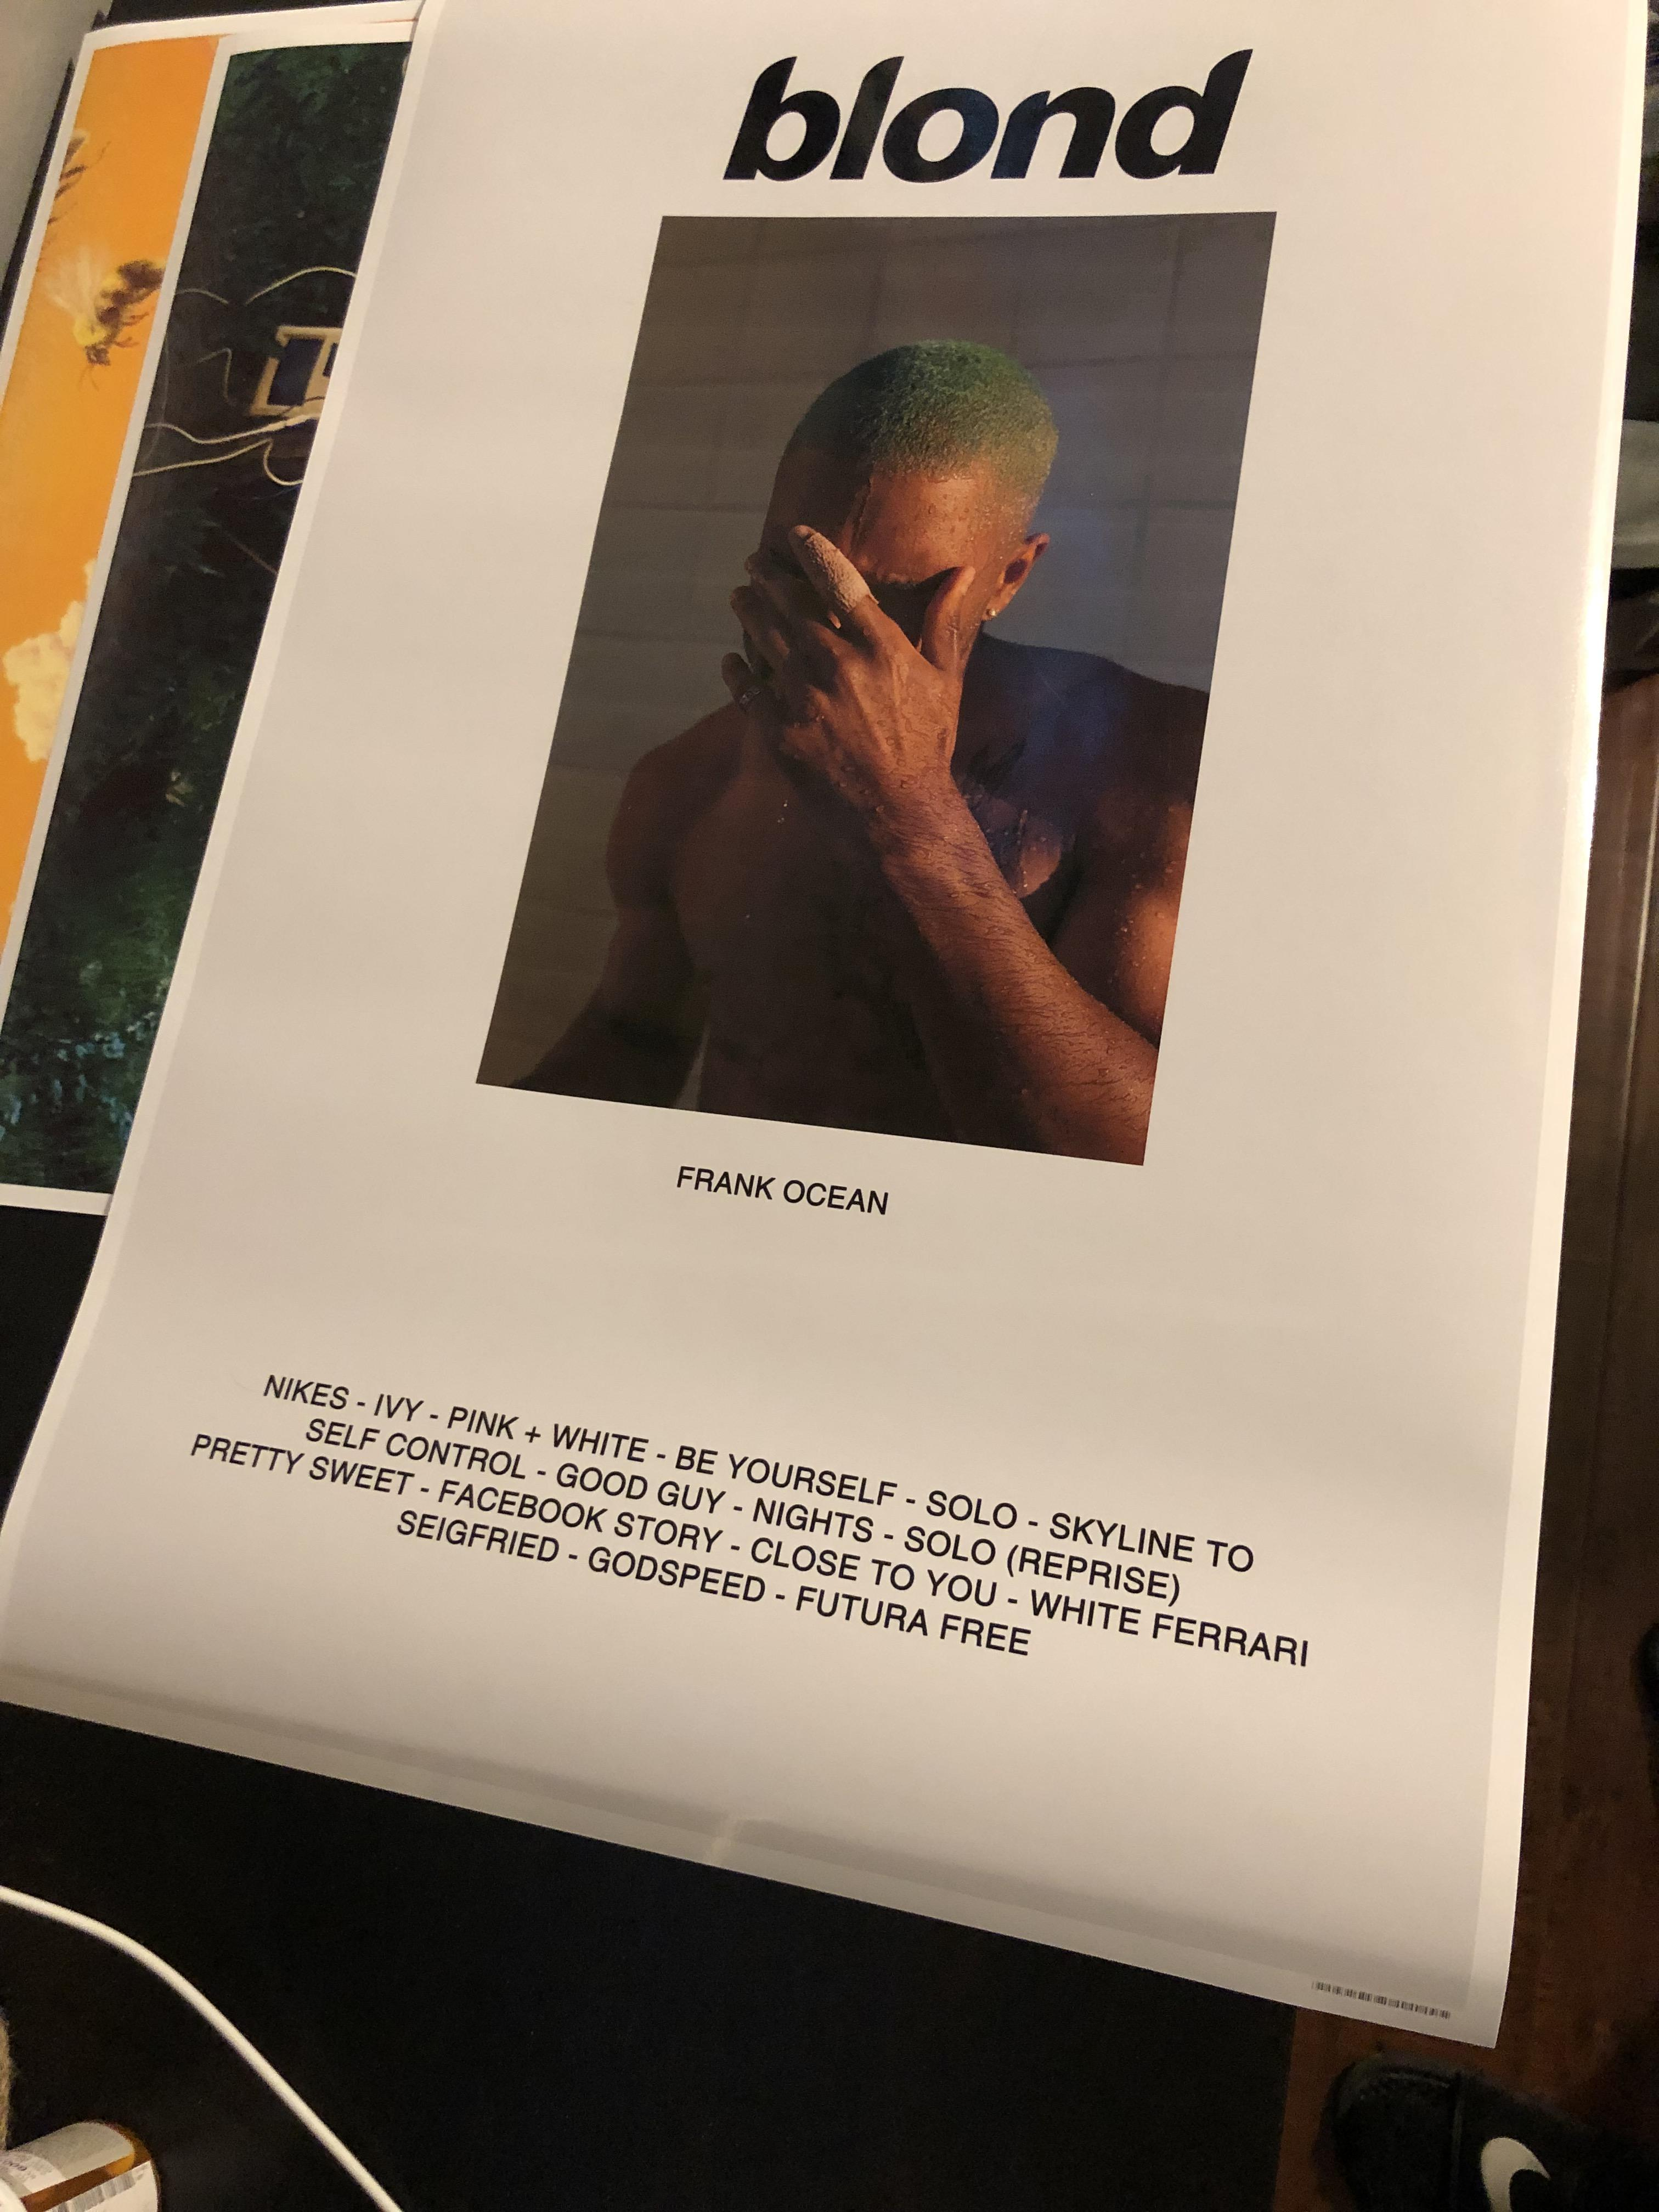 my blonde poster came in today